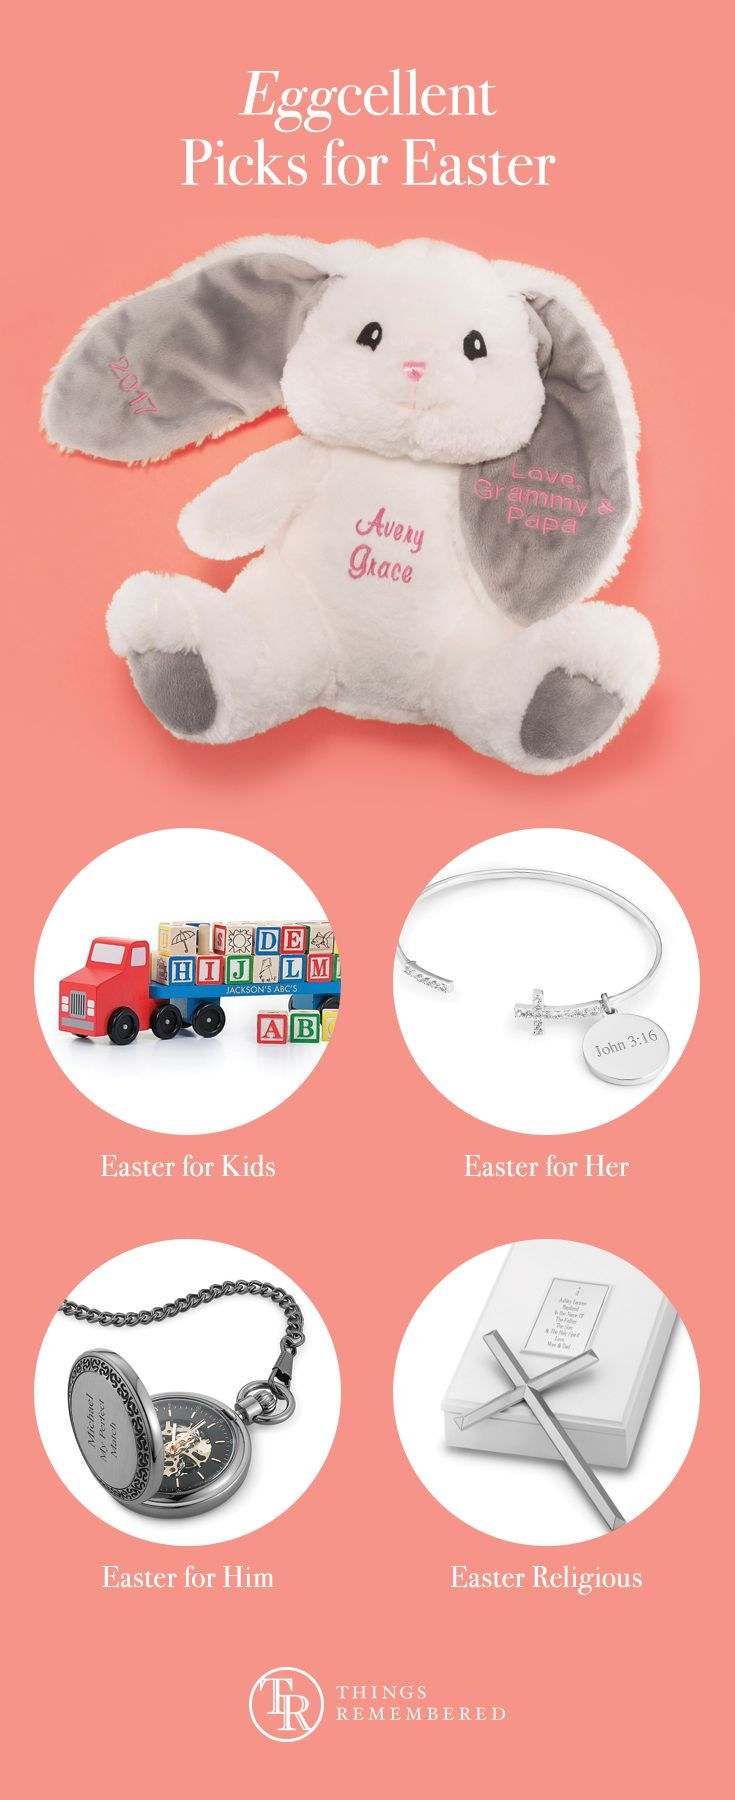 16 best kids gifts images on pinterest kids gifts childrens gifts create easter memories with personalized gifts for men women and kids from personalized easter baskets and stuffed bunnies to religious jewelry more negle Image collections